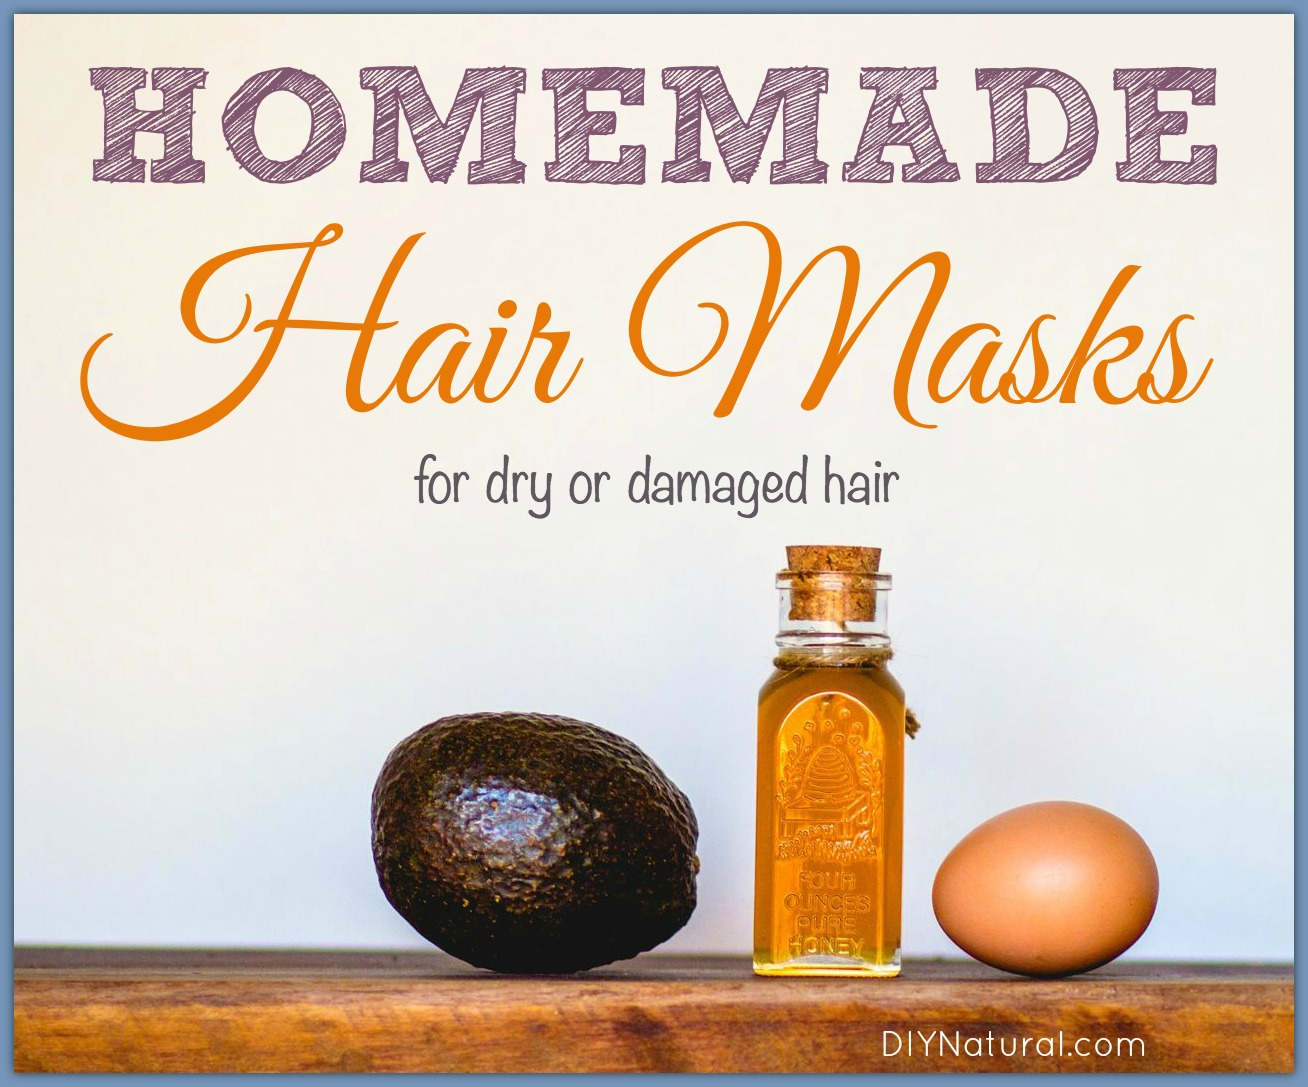 Homemade Hair Mask Several Recipes For Dry Or Damaged Hair